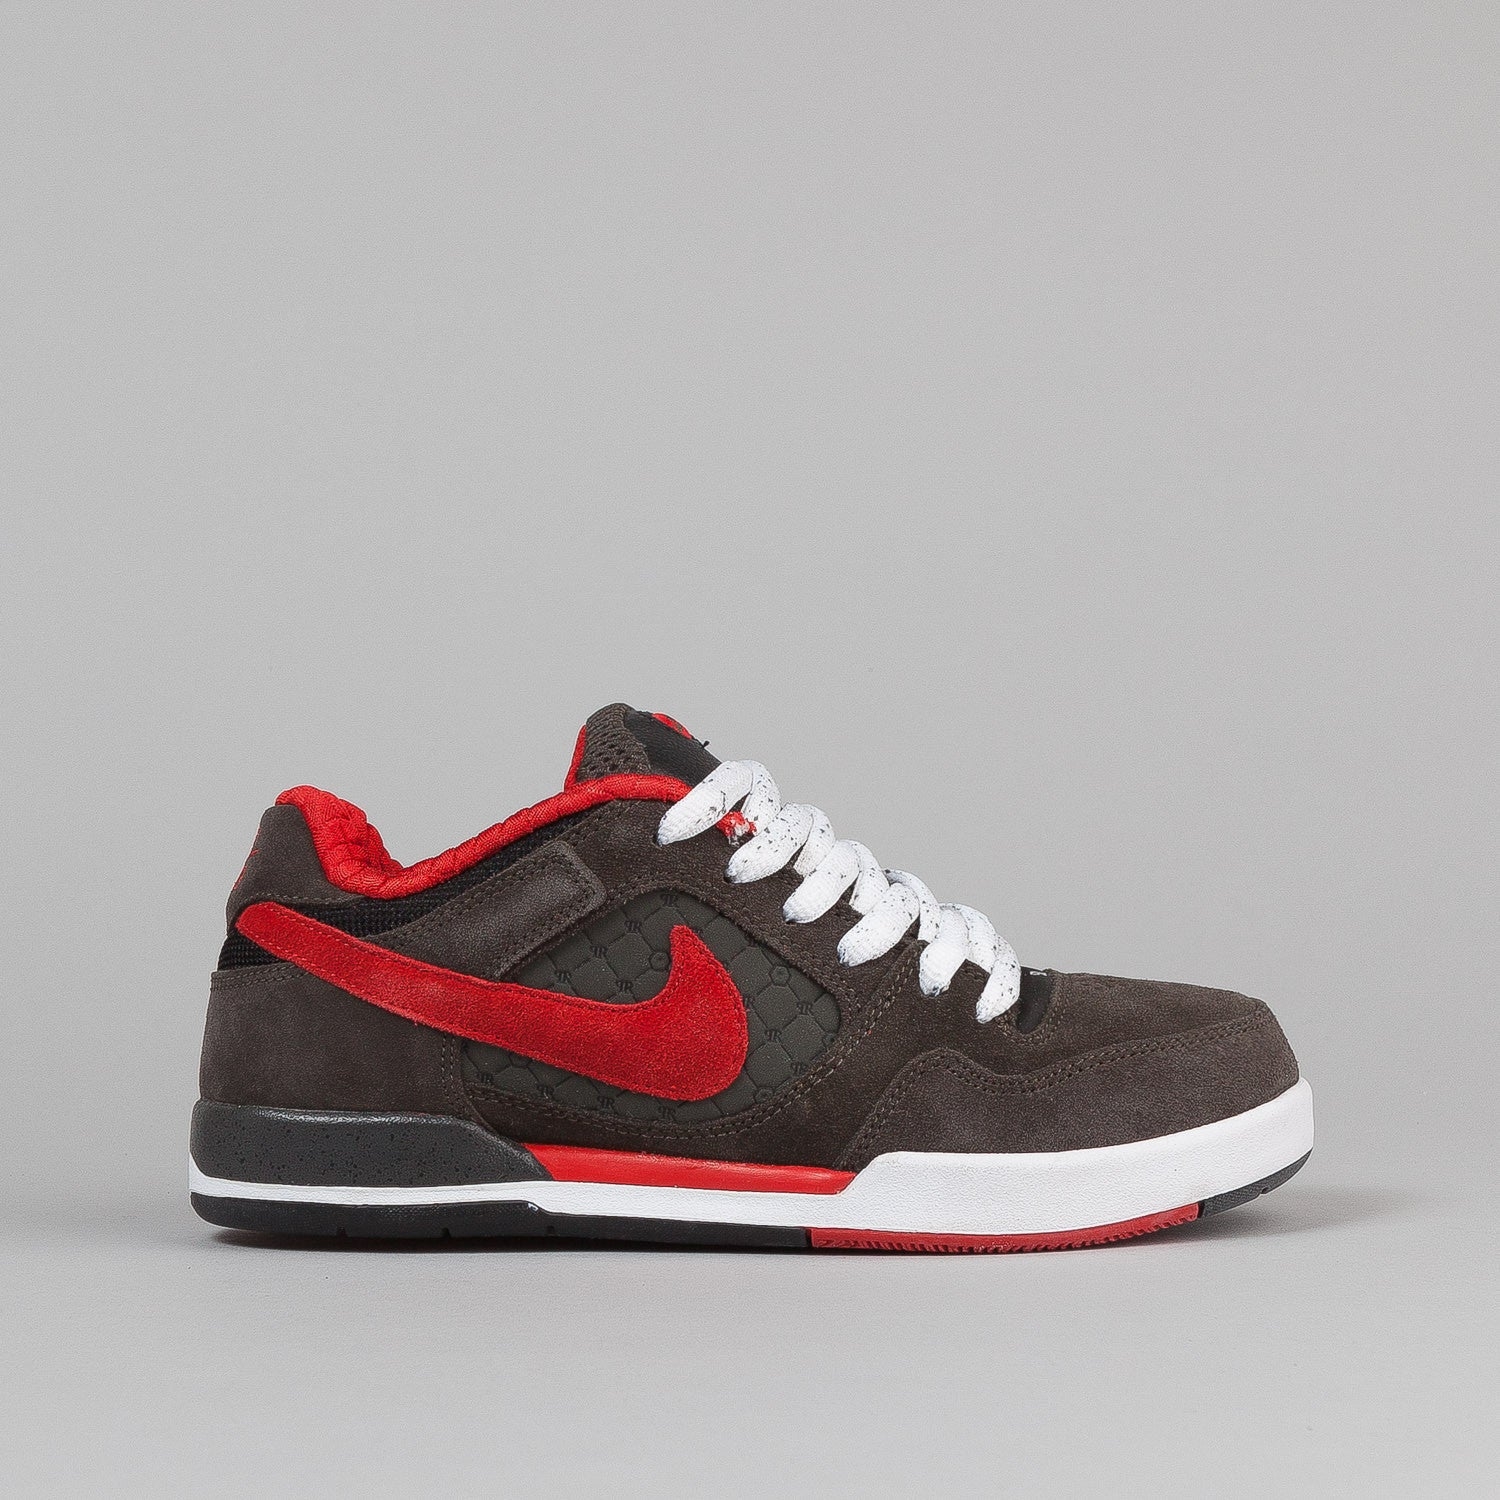 Nike SB Paul Rodriguez 2 Shoes